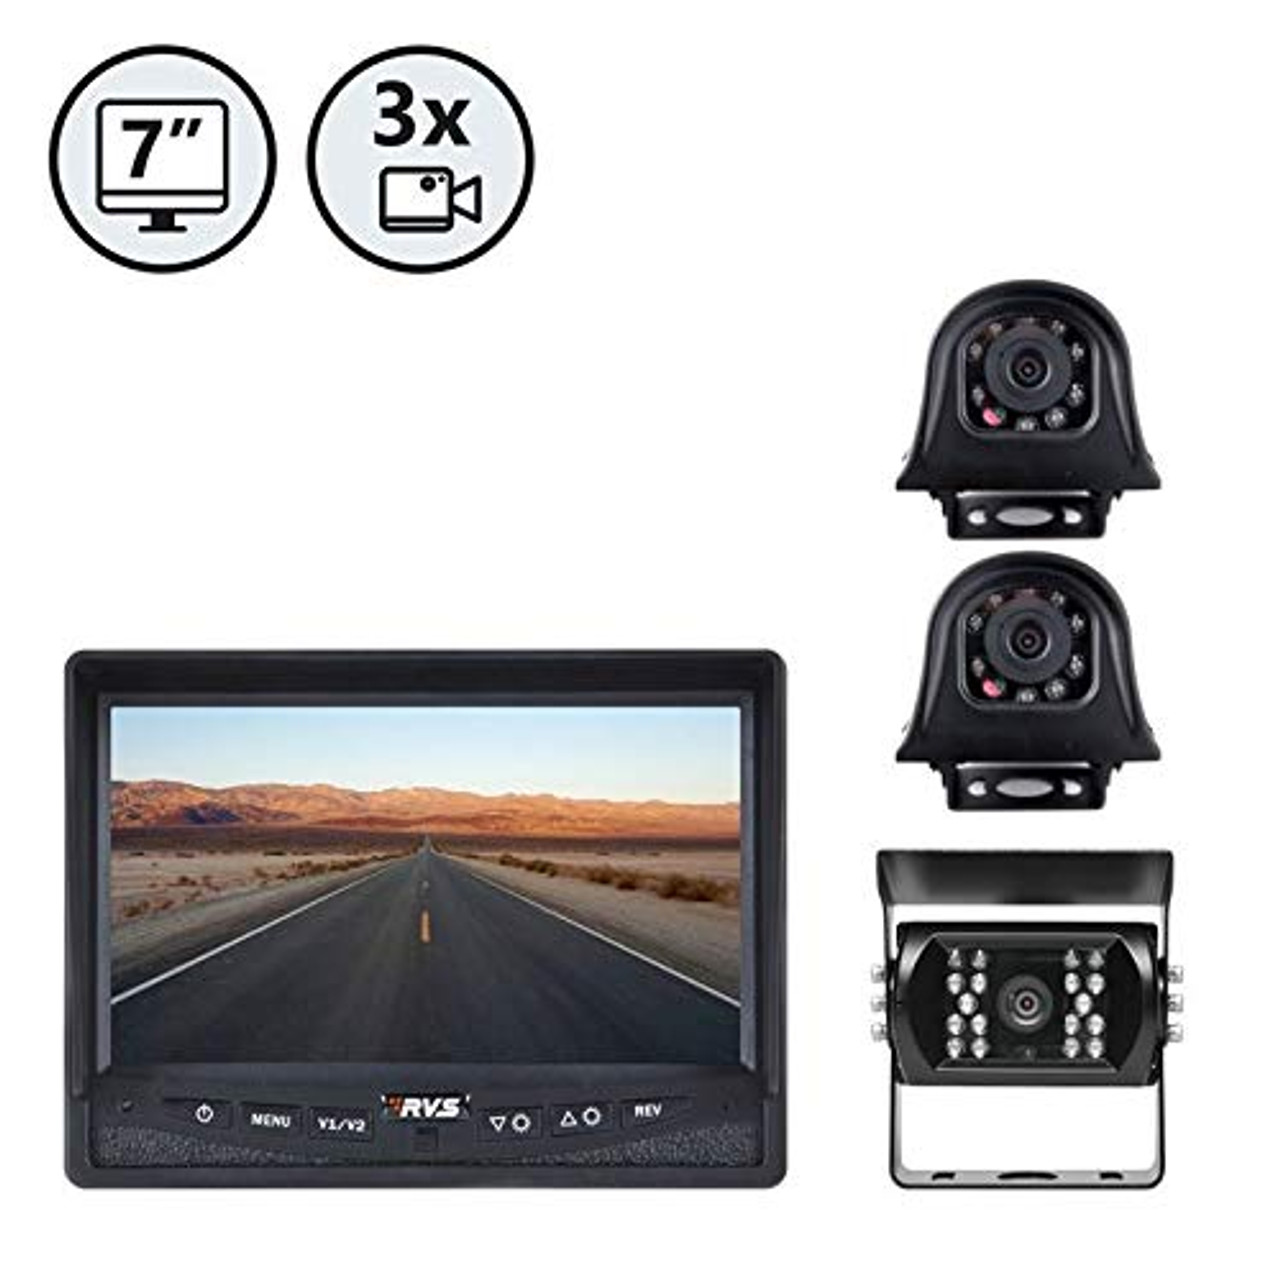 "7"" Display, Backup Camera, Both Side Cameras, 66' Cable, 2 x 33' Cable 